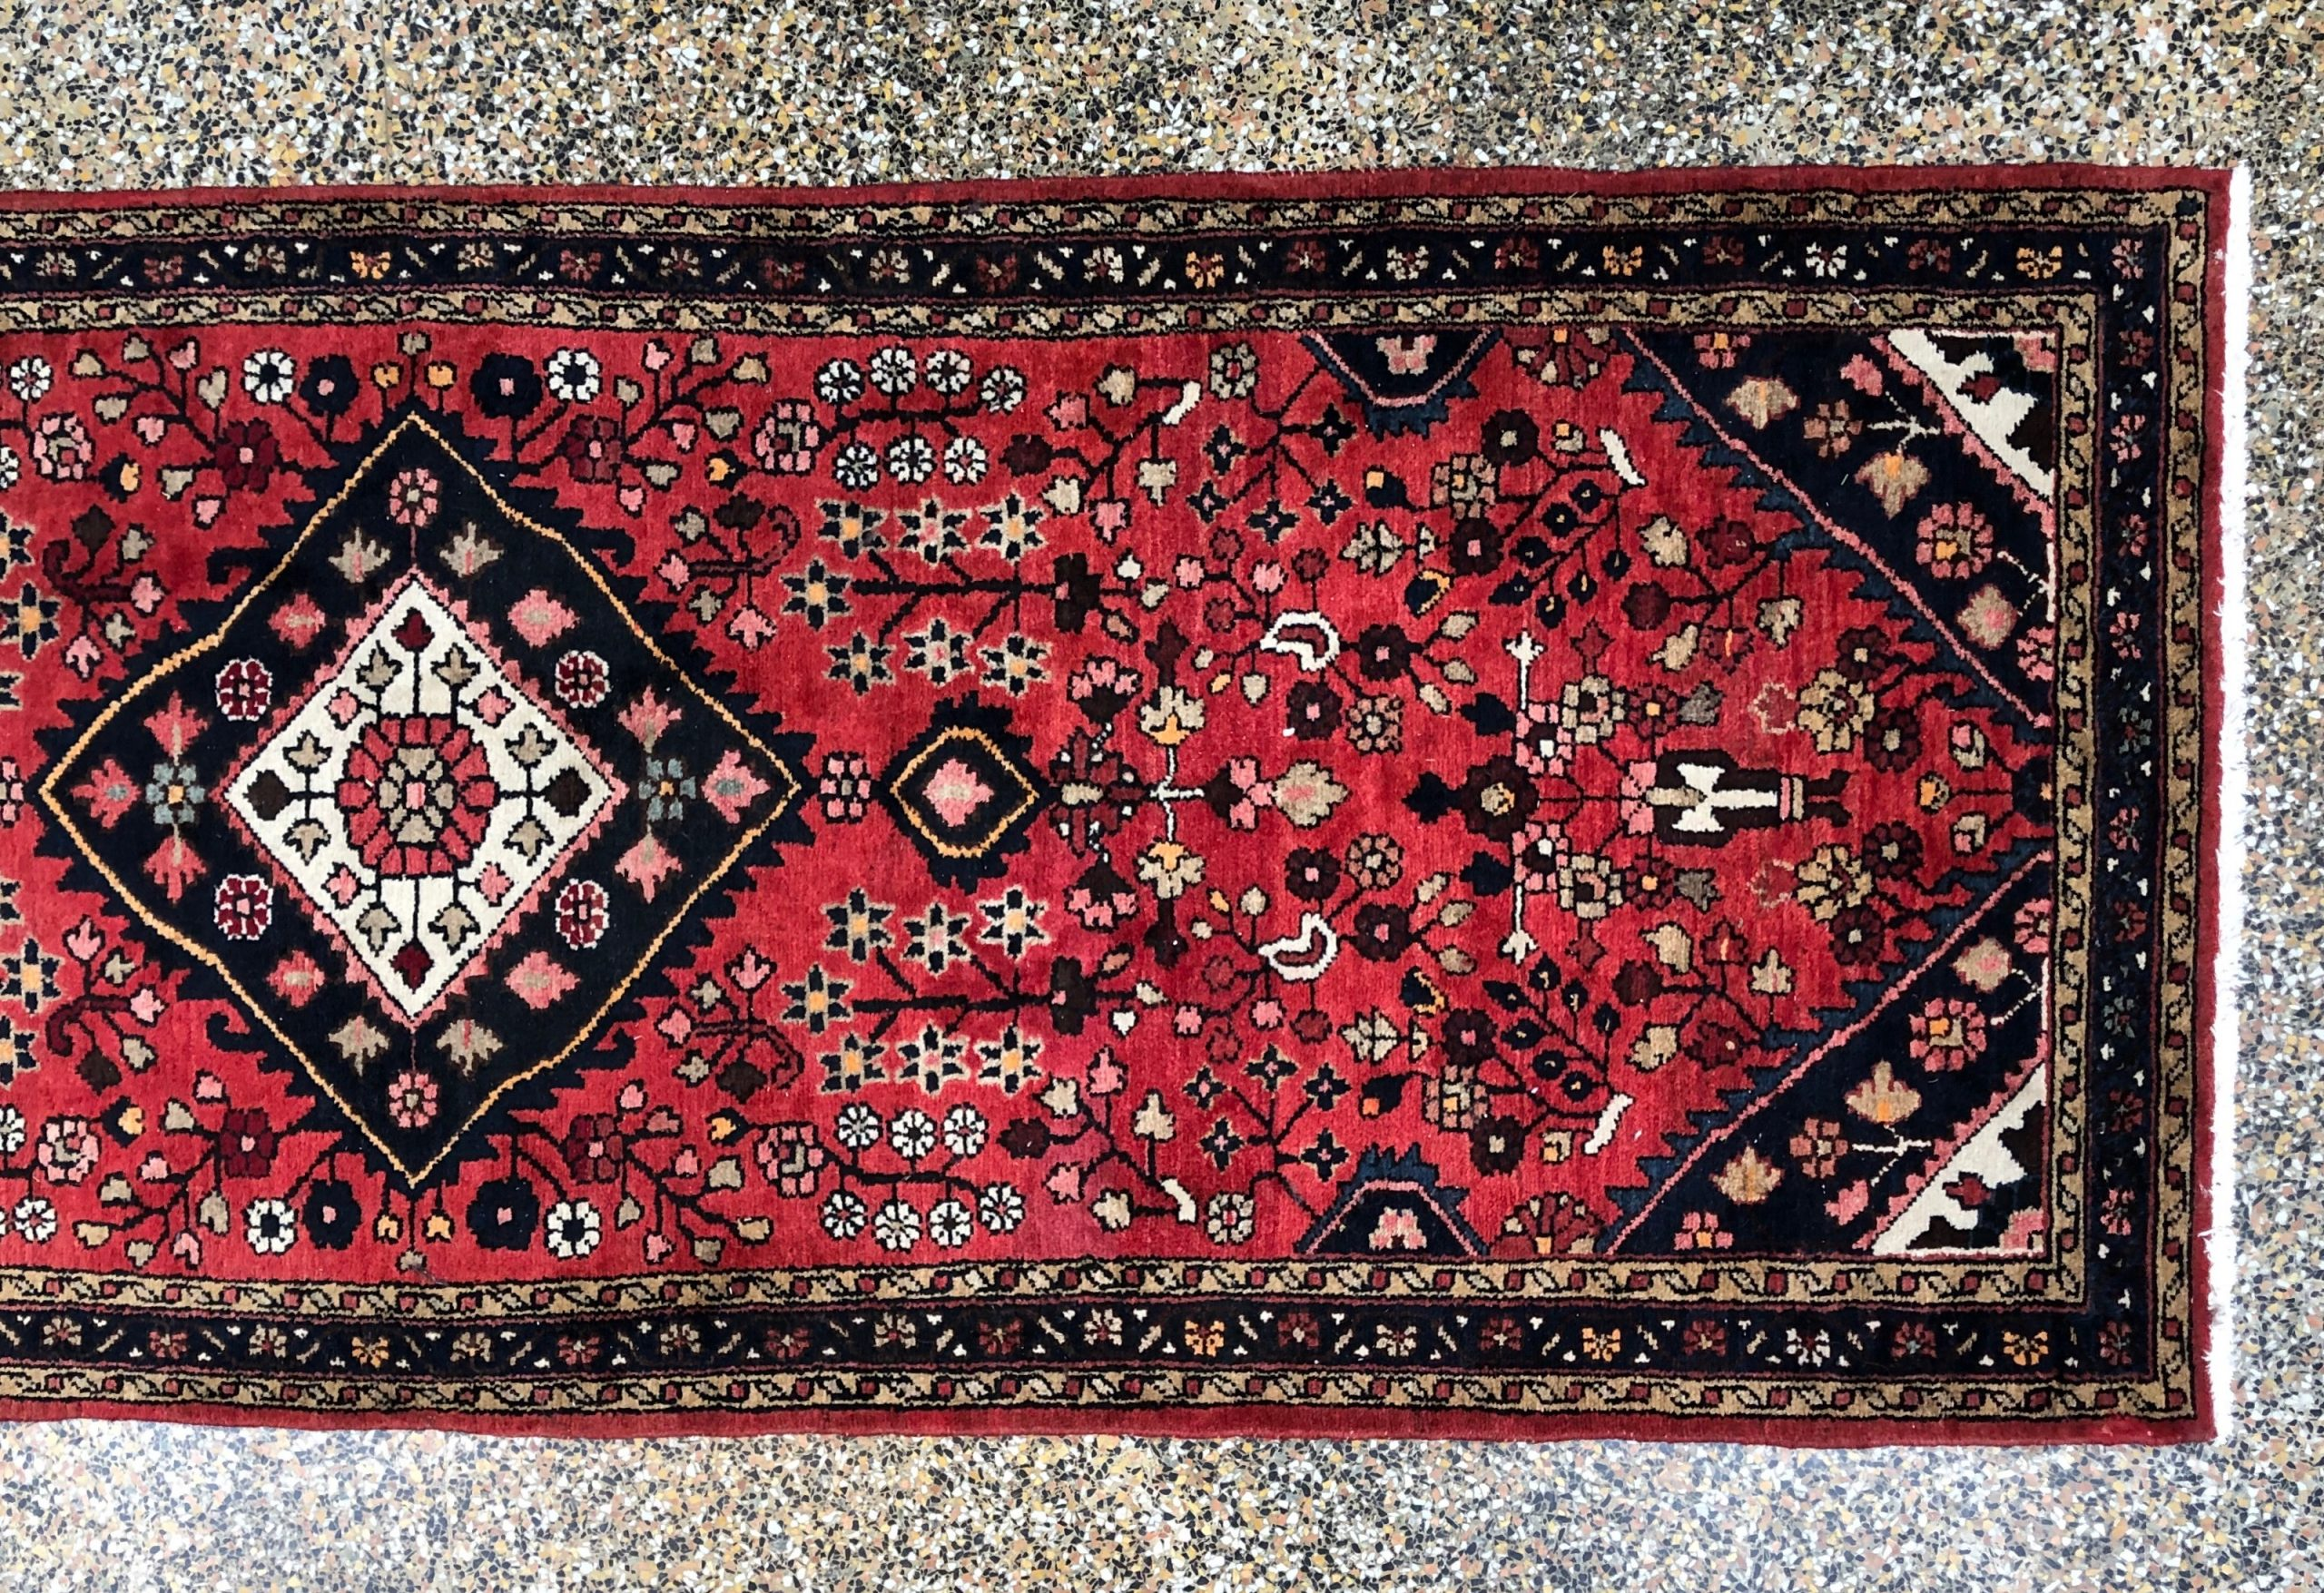 Ardor Home - Furniture & Rugs's post thumbnail for Persian Rug Collection